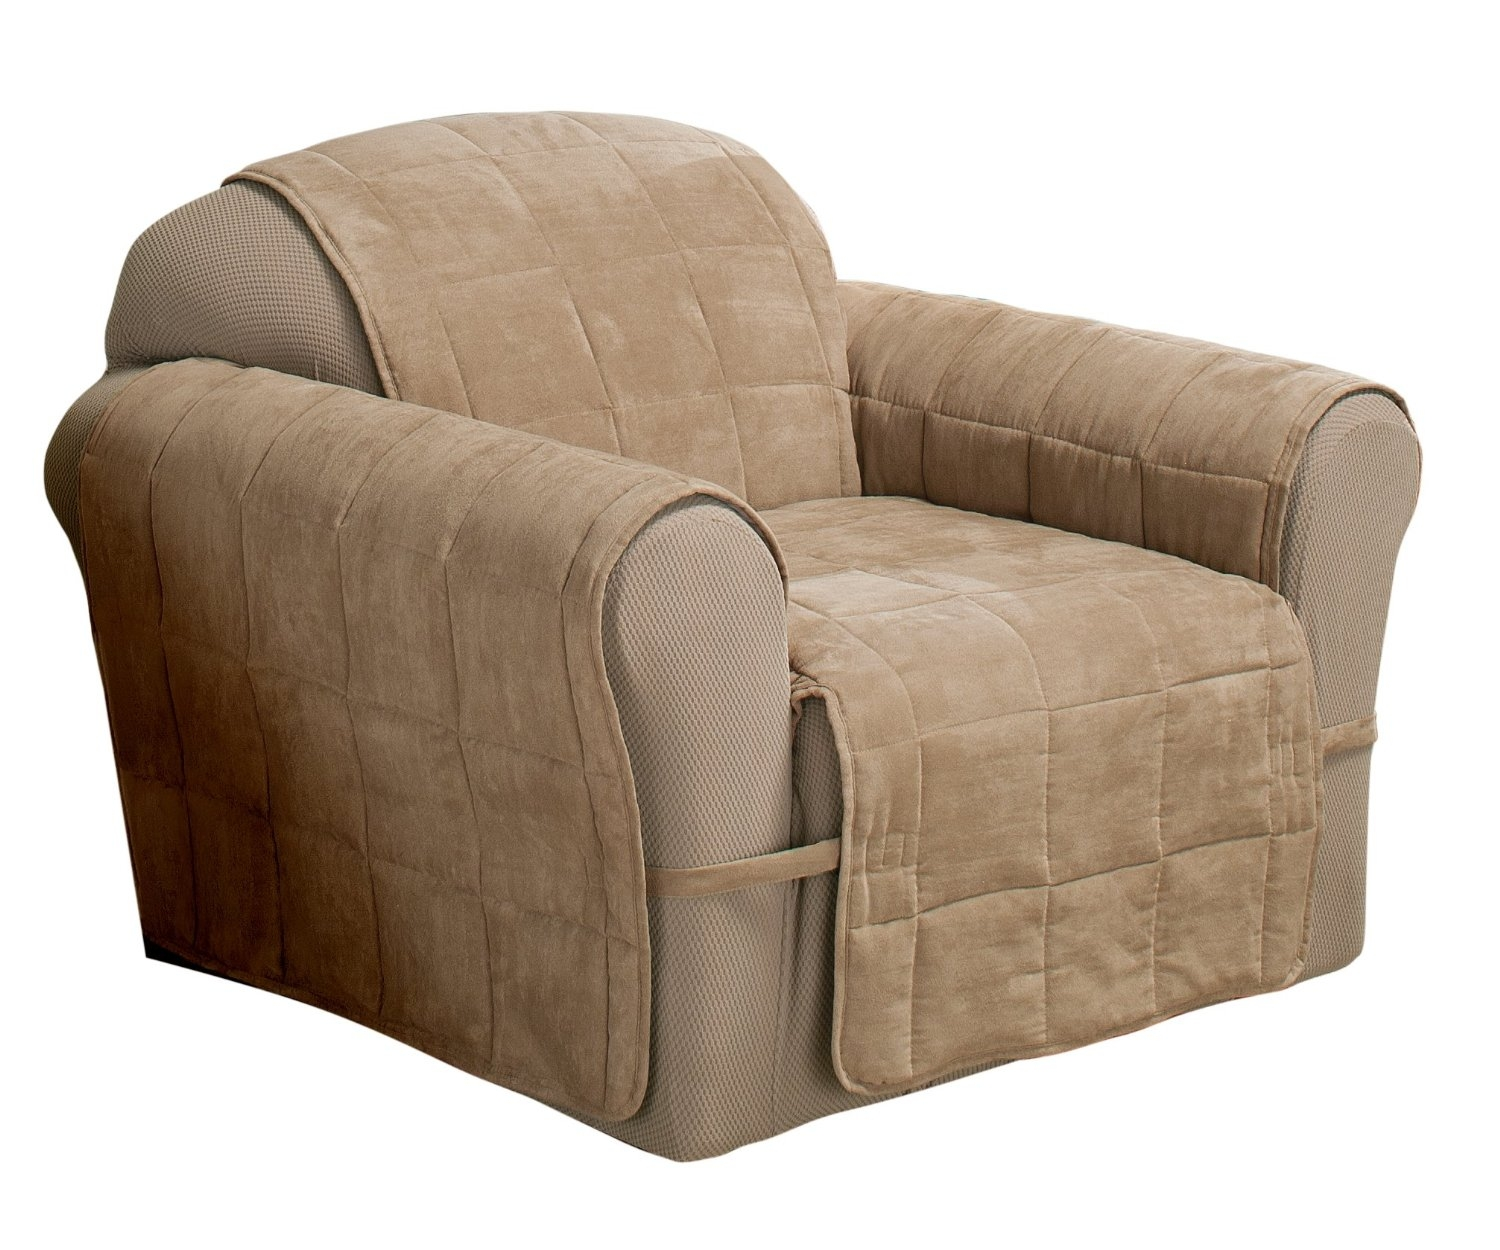 Sofas Center Loose Covers For Sofas Washable Slipcovers Seater In Sofa And Chair Slipcovers (Image 13 of 15)